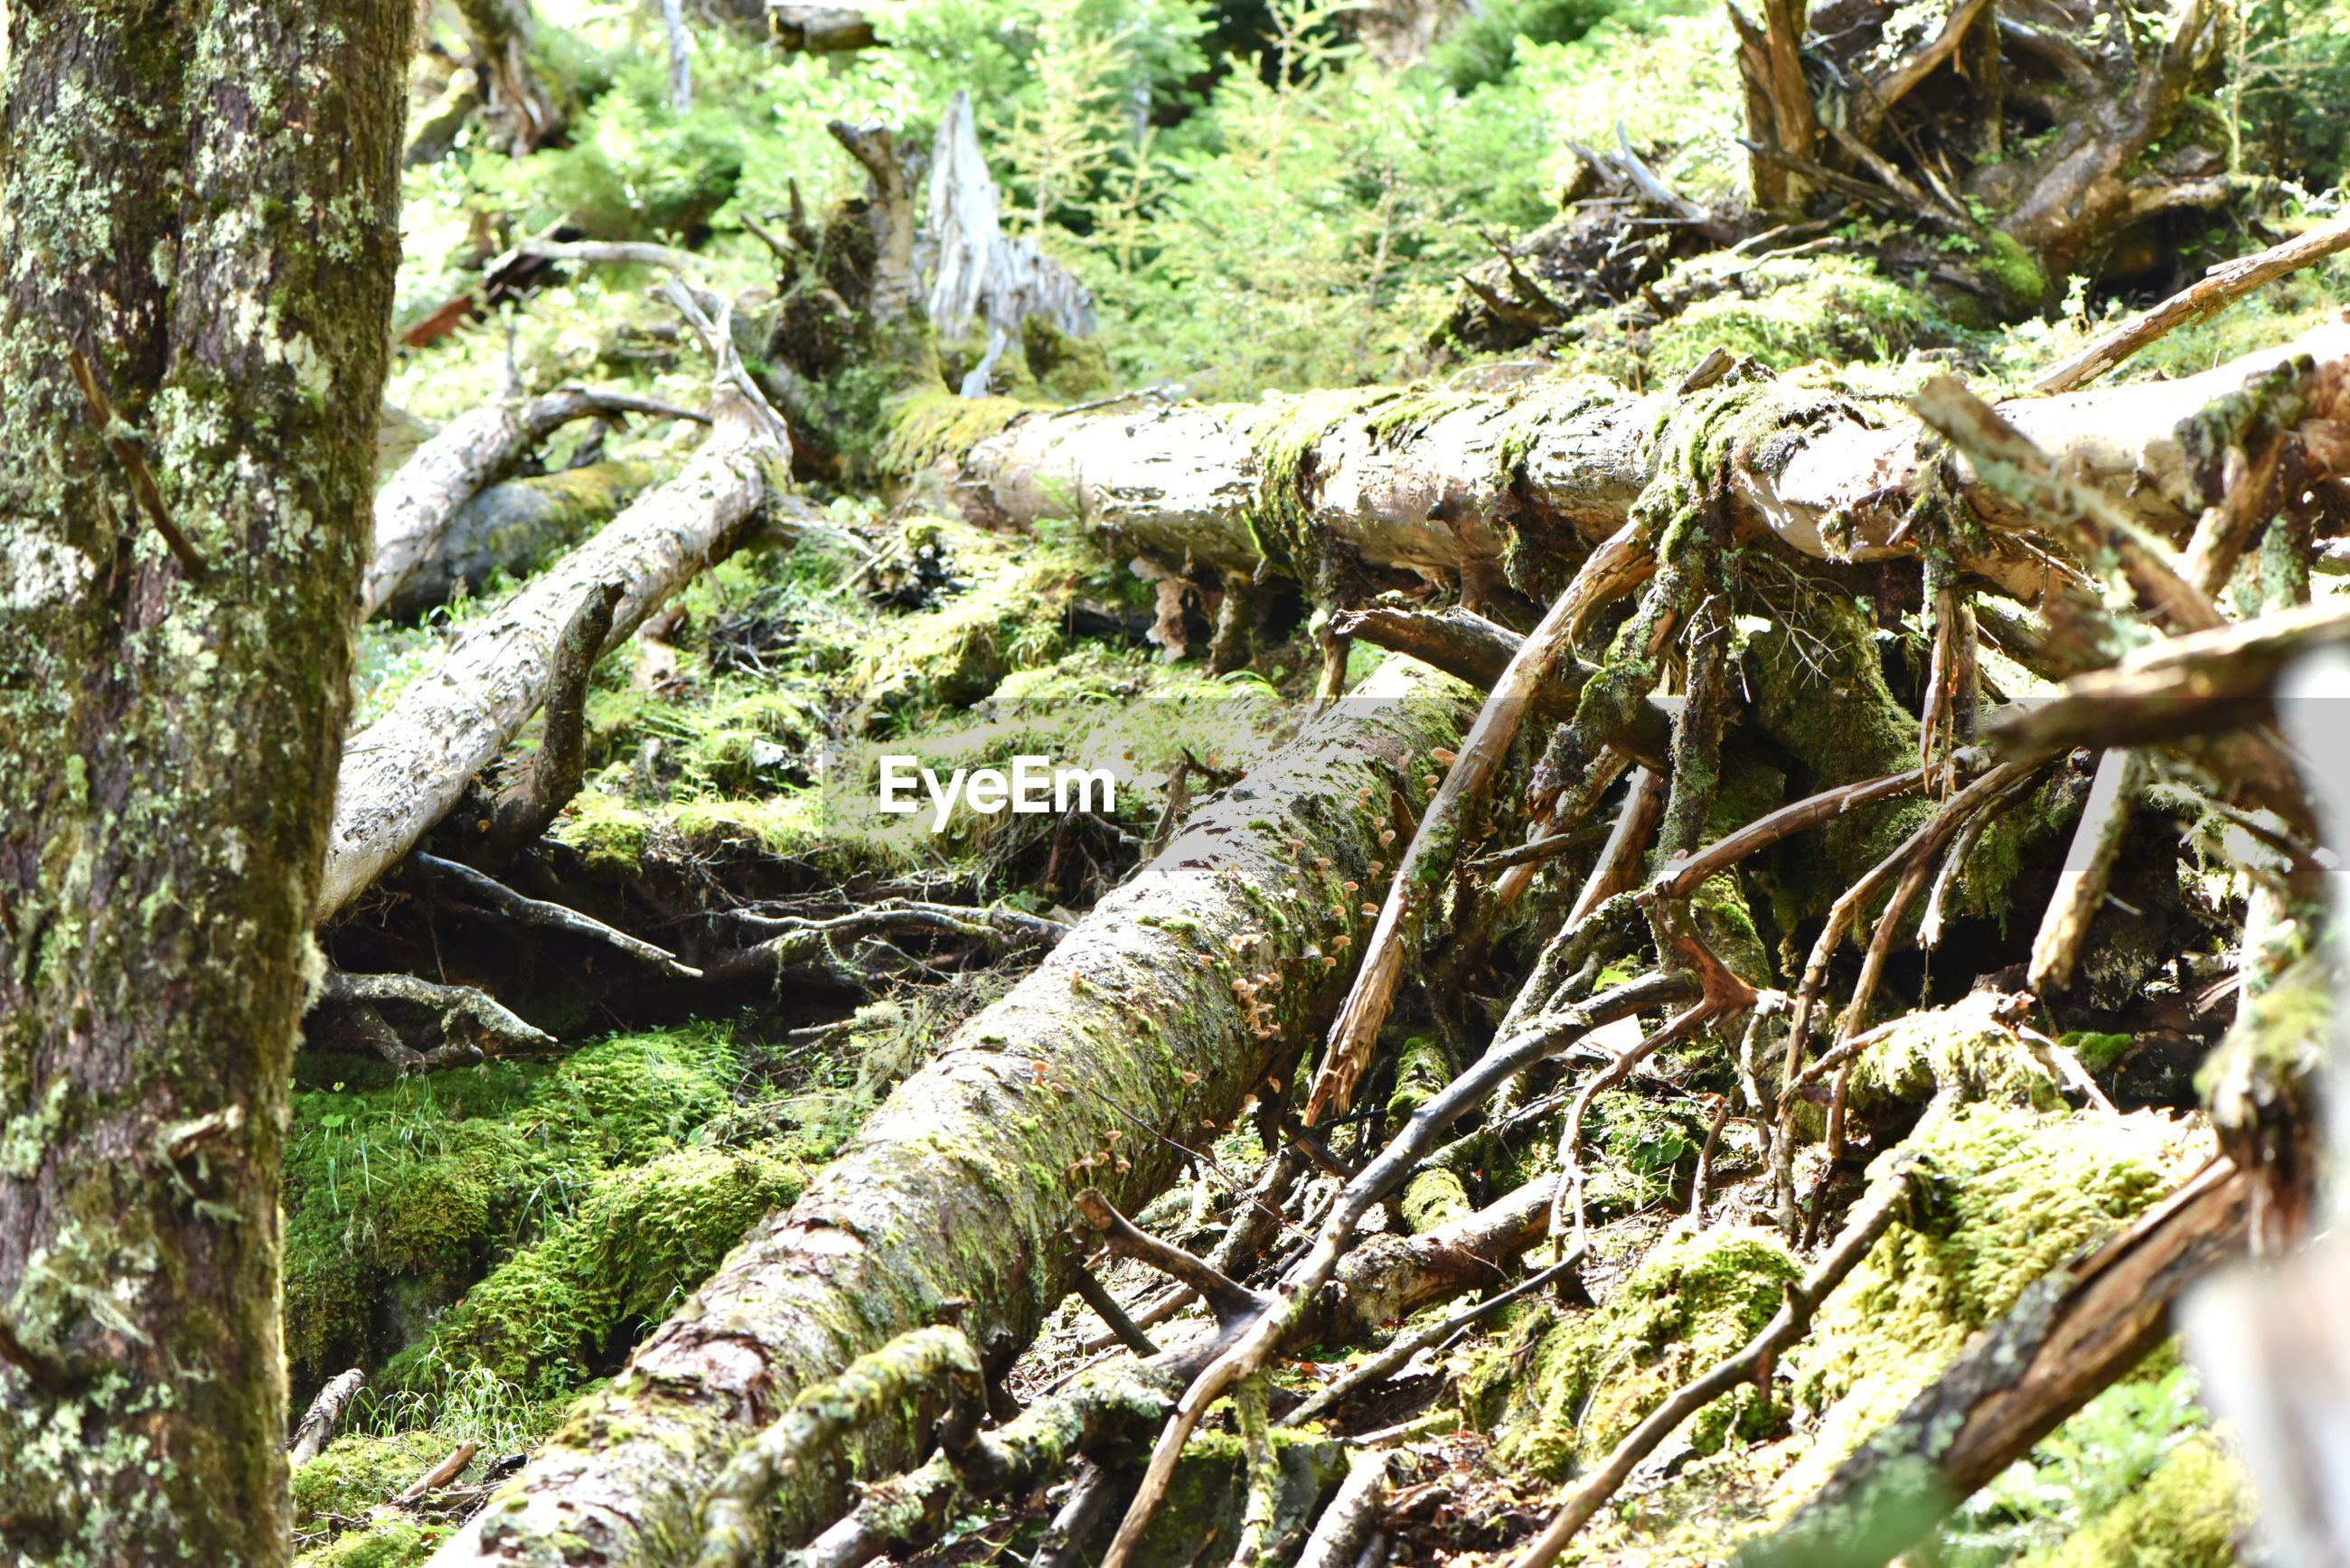 tree, plant, forest, tree trunk, trunk, land, growth, nature, tranquility, day, no people, woodland, beauty in nature, outdoors, moss, root, environment, log, plant part, sunlight, wood